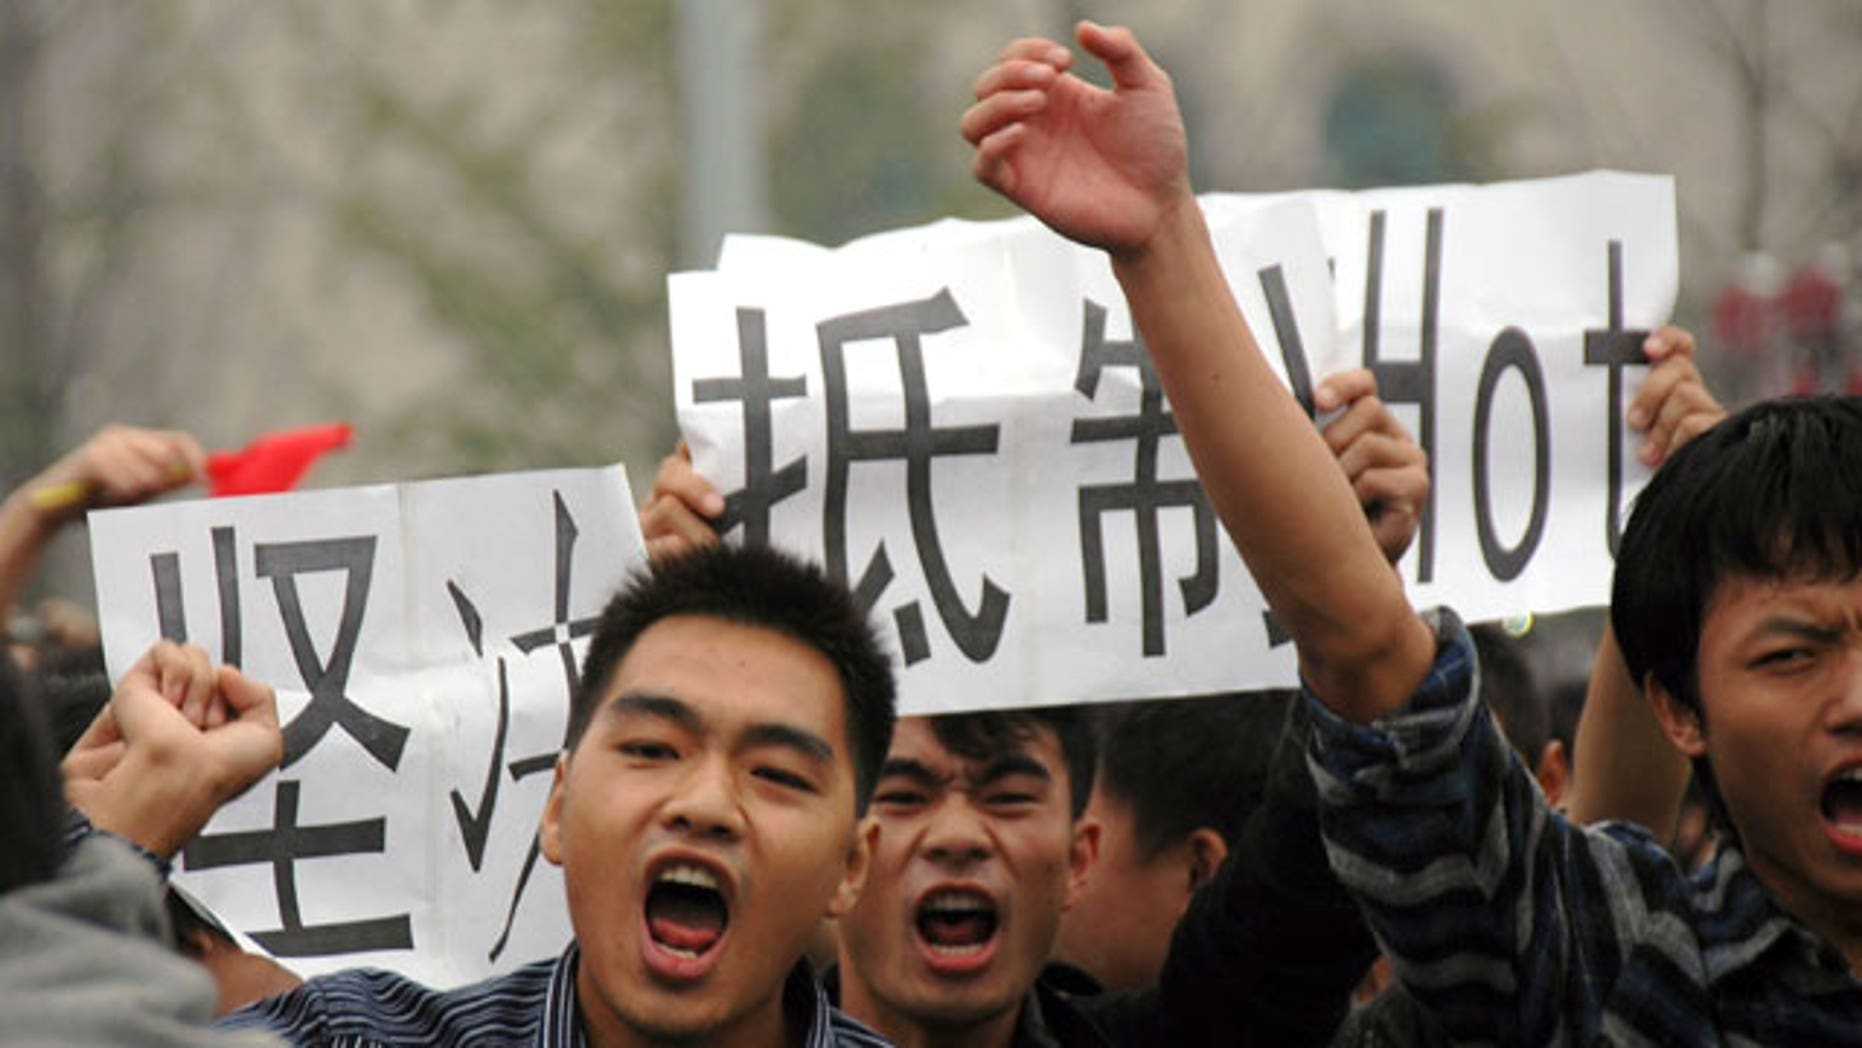 Anti-Japan protesters march with cards calling for a boycott of Japanese products in Wuhan in central China's Hubei province Monday, Oct. 18, 2010. Thousands of Chinese have marched in different Chinese cities in sometimes violent protests since Saturday against Japan and its claim to disputed islands, a show of anger far larger than past protests over the competing territorial claims.